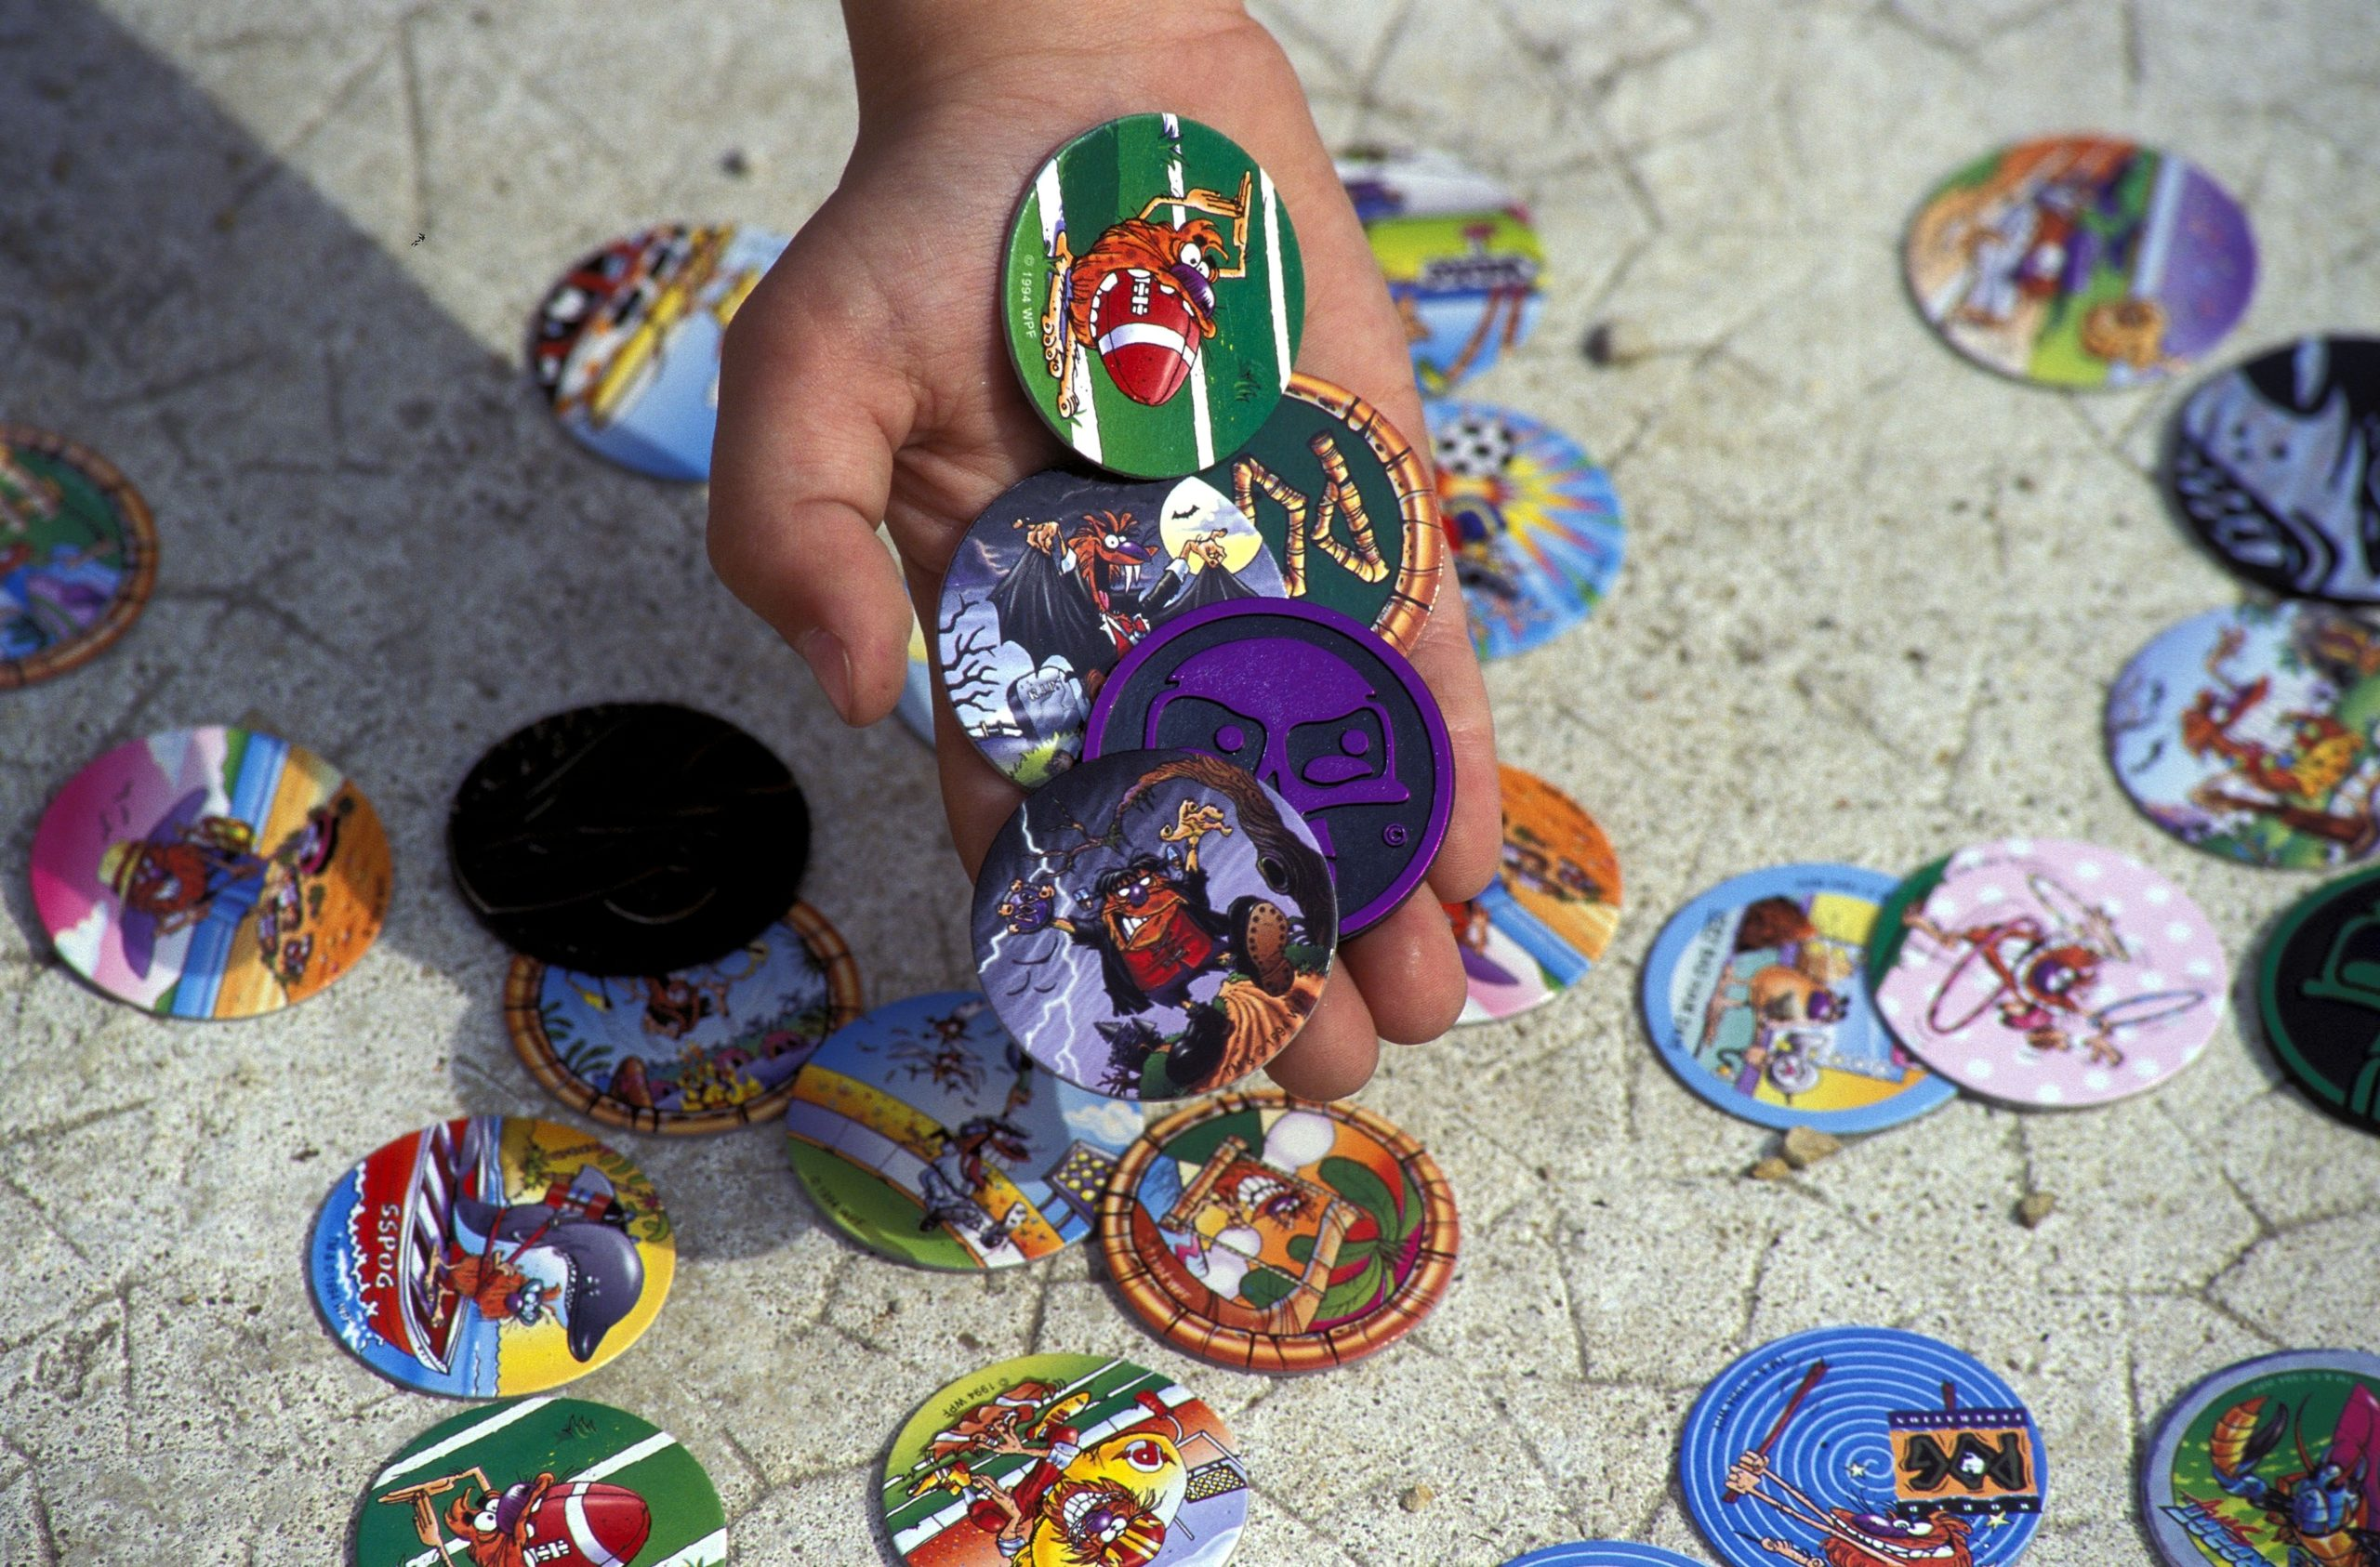 Most Popular Toys of the 90s: Pogs